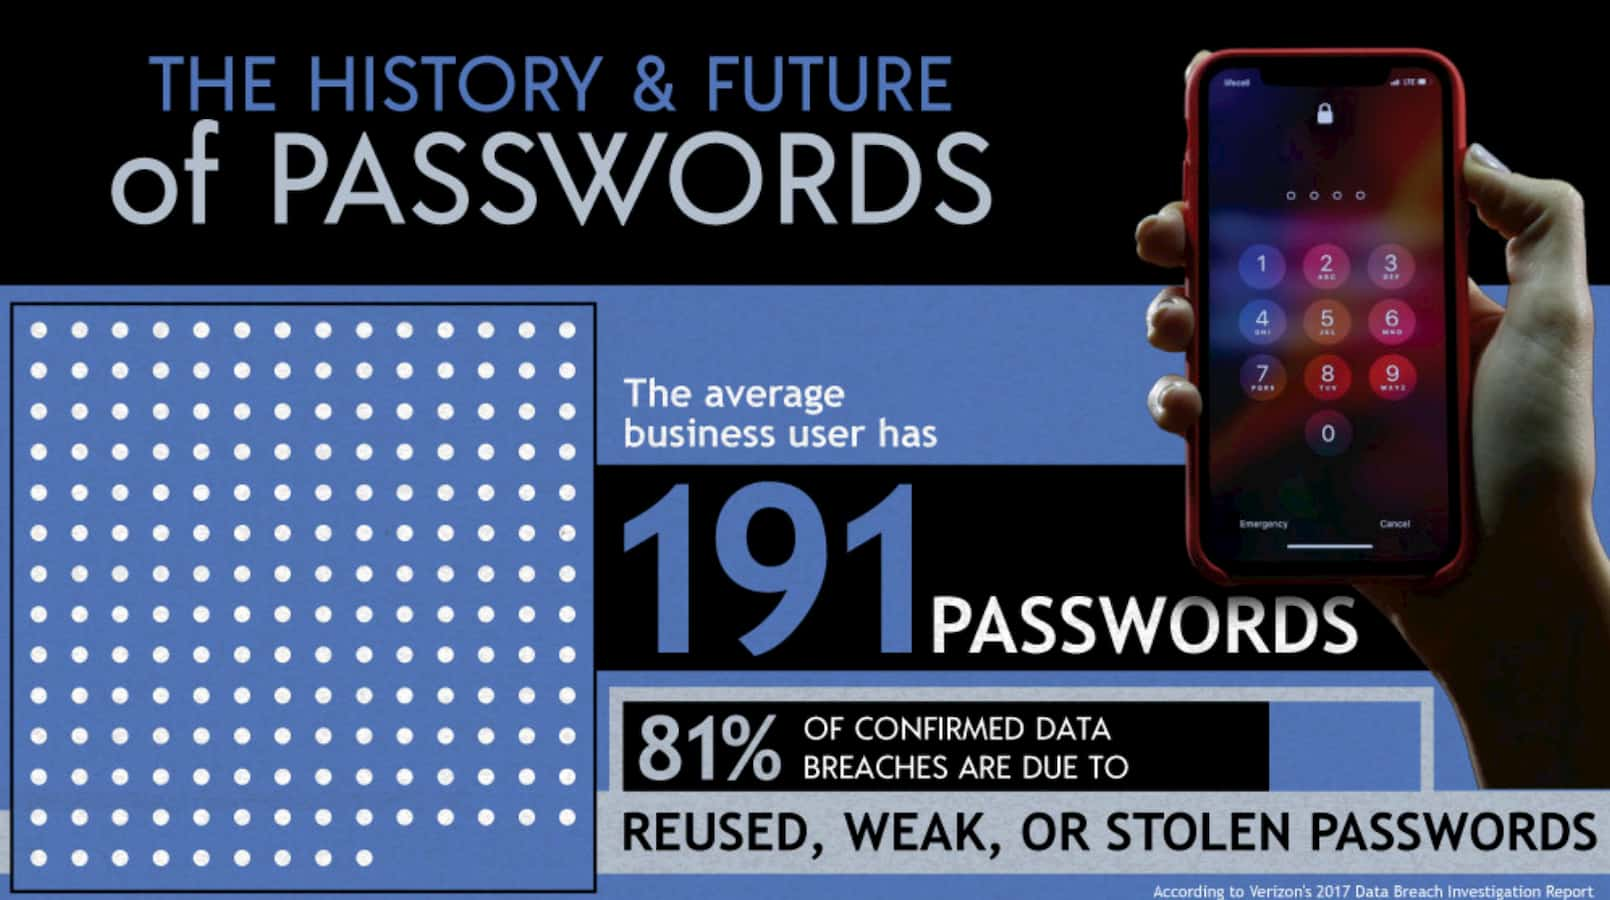 history and future of passwords